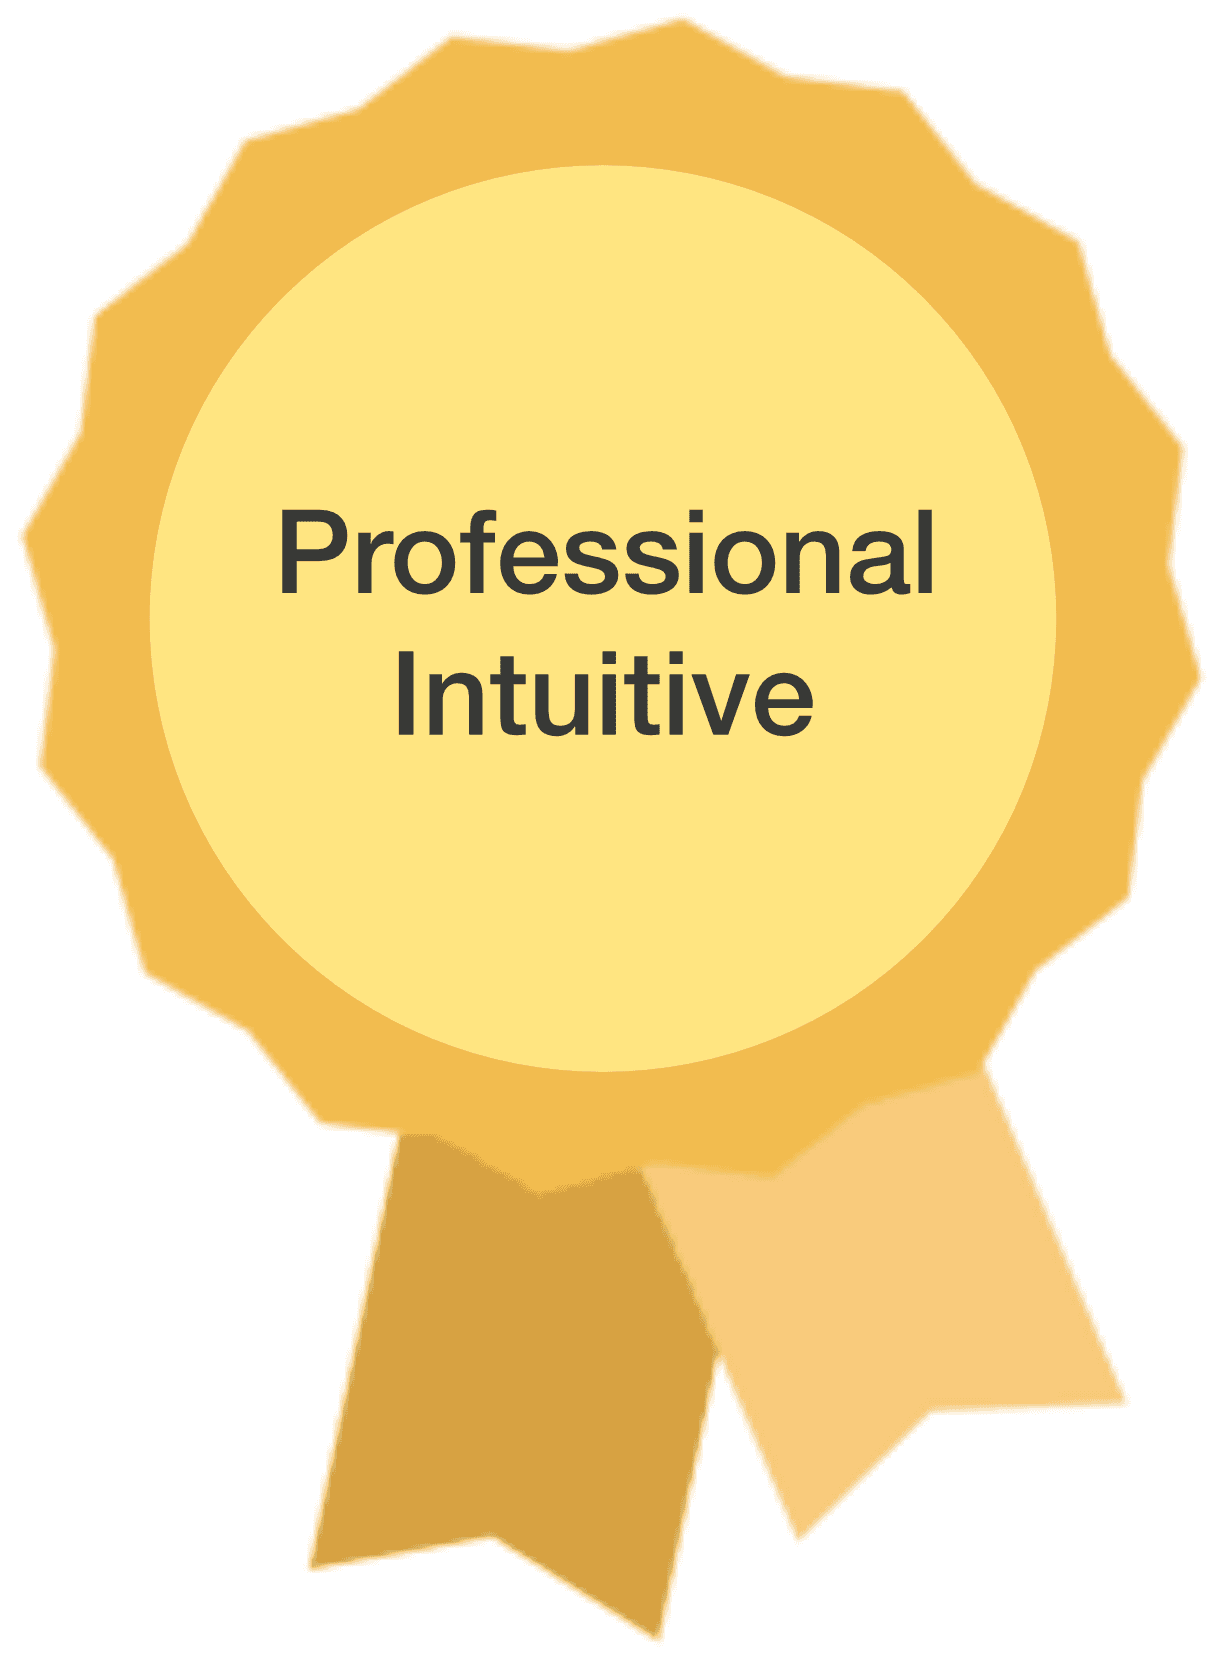 Professional Intuitive